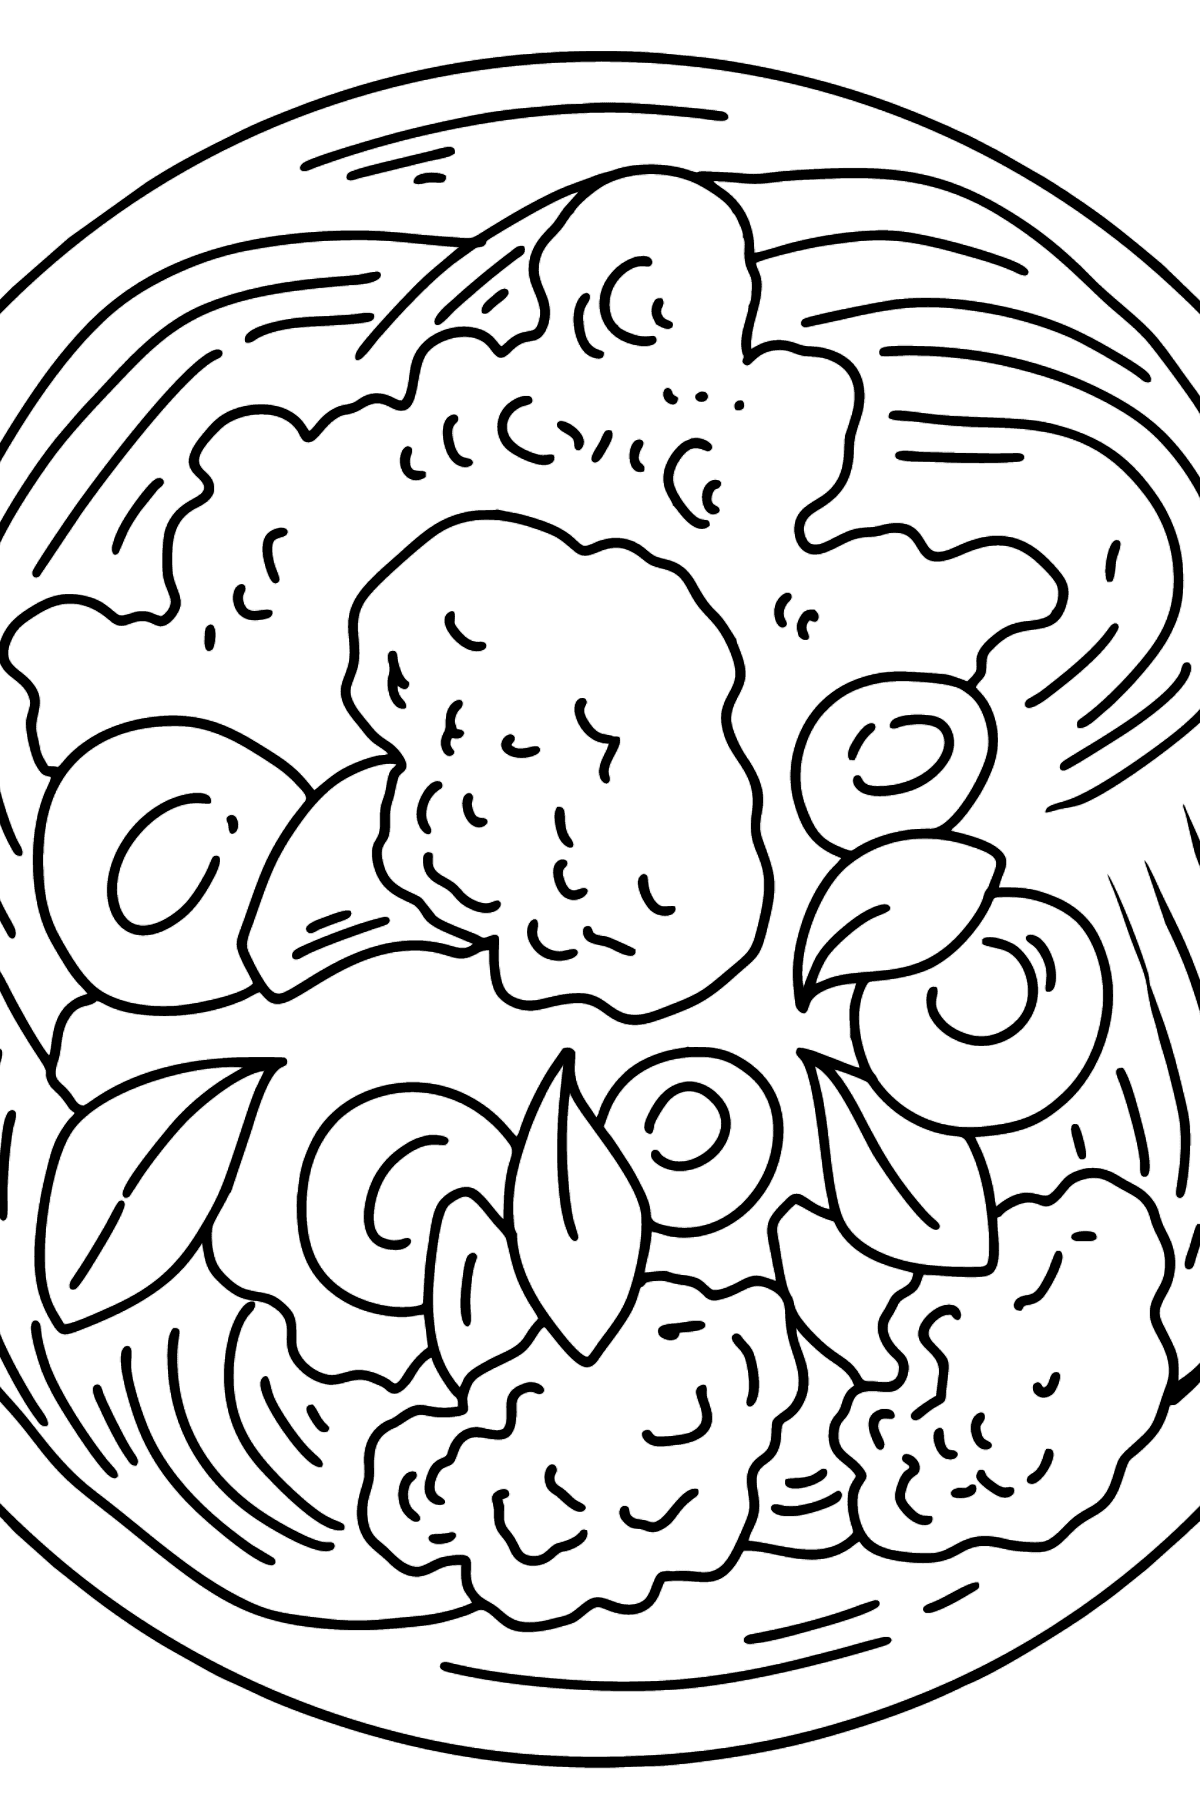 Spaghetti Pasta with Cheese and Broccoli coloring page - Coloring Pages for Kids